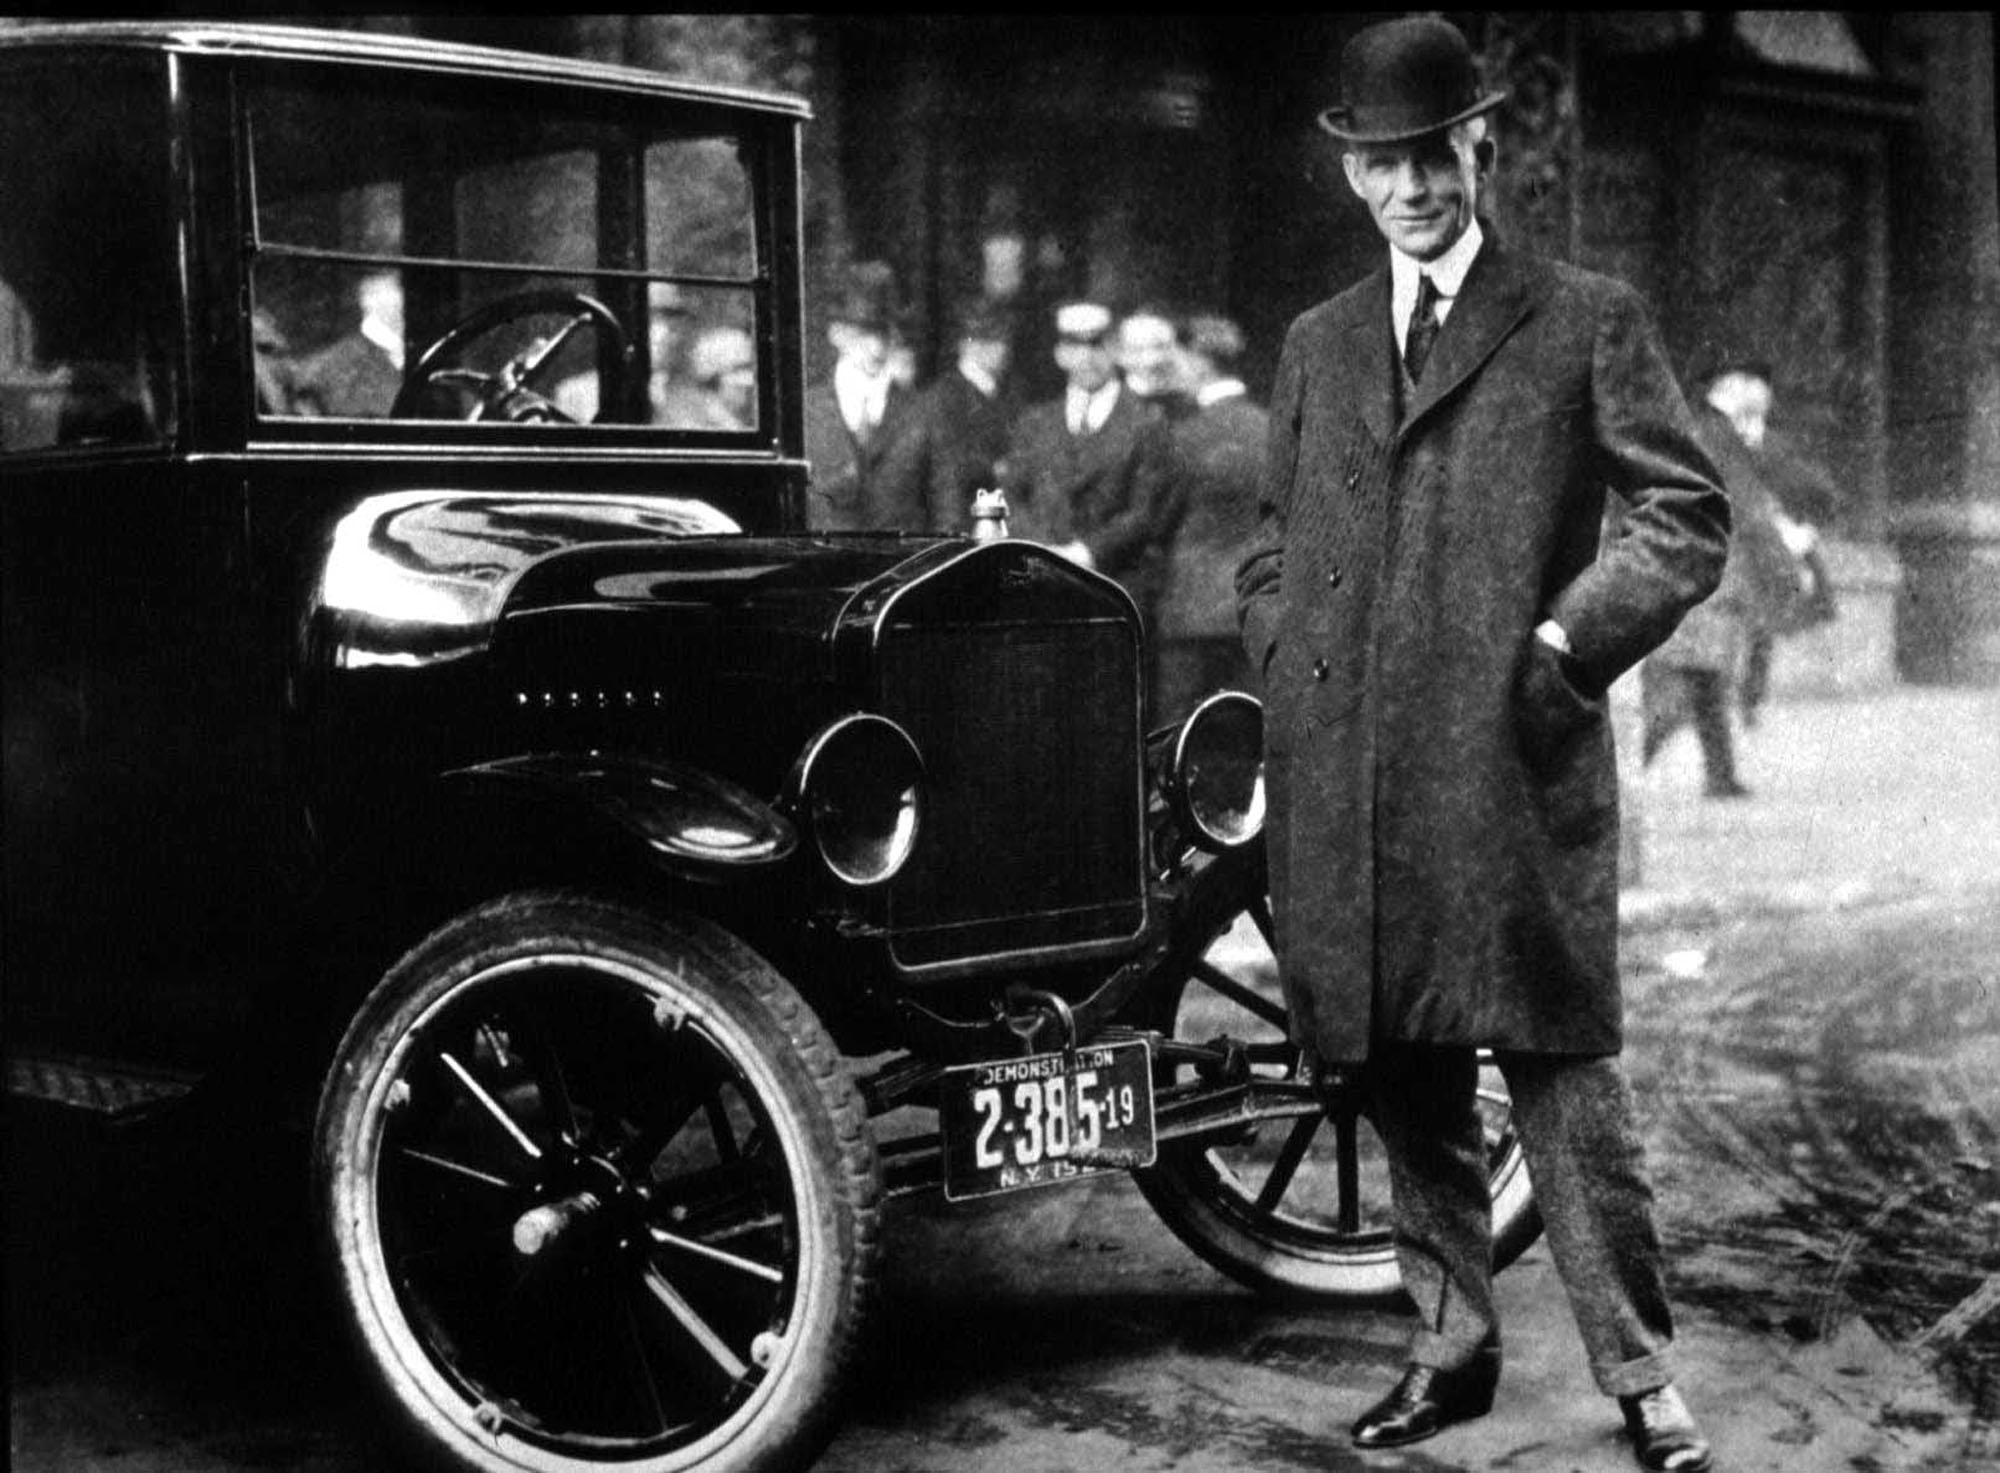 Henry Ford standing beside his Model T car.